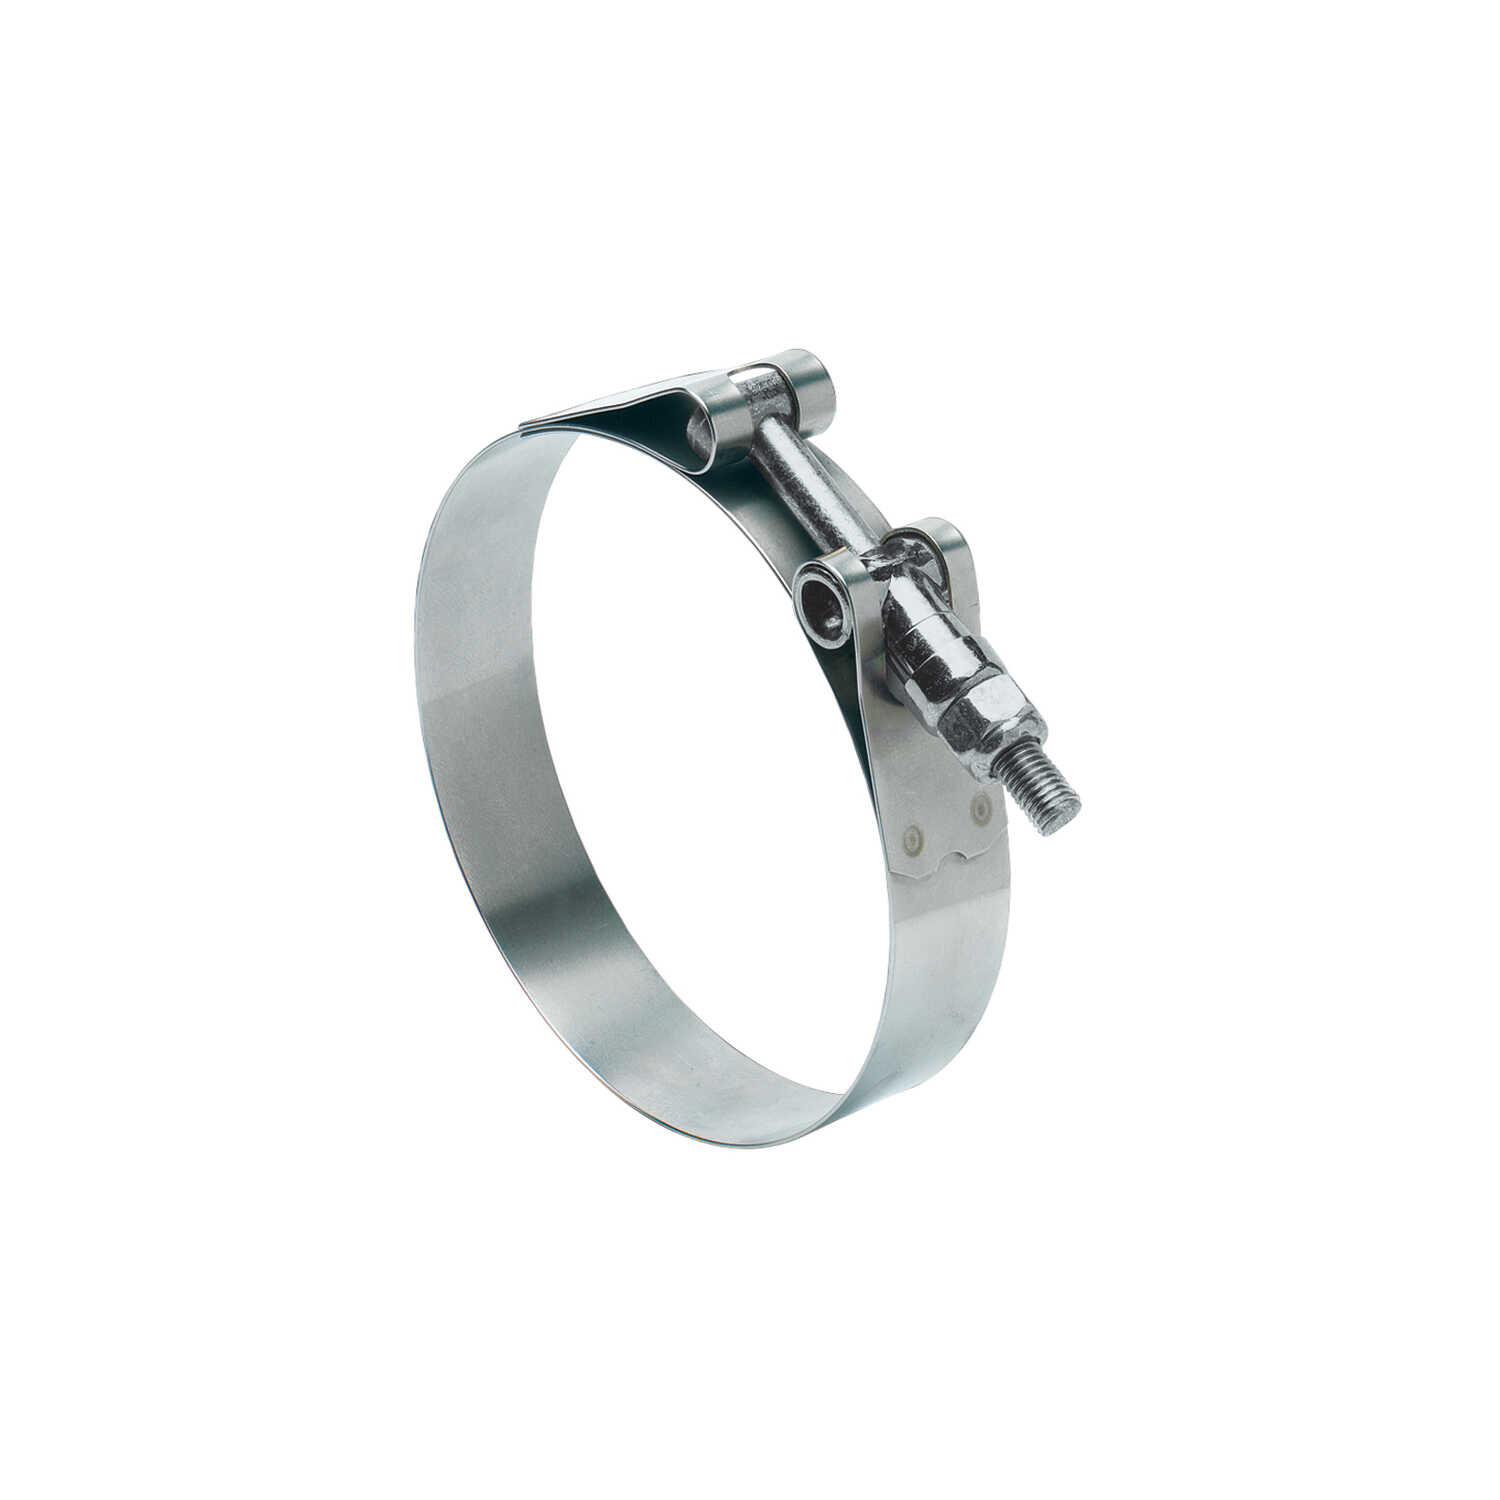 Ideal  Tridon  4 in. 4.31 in. SAE 400  Hose Clamp  Stainless Steel Band  T-Bolt